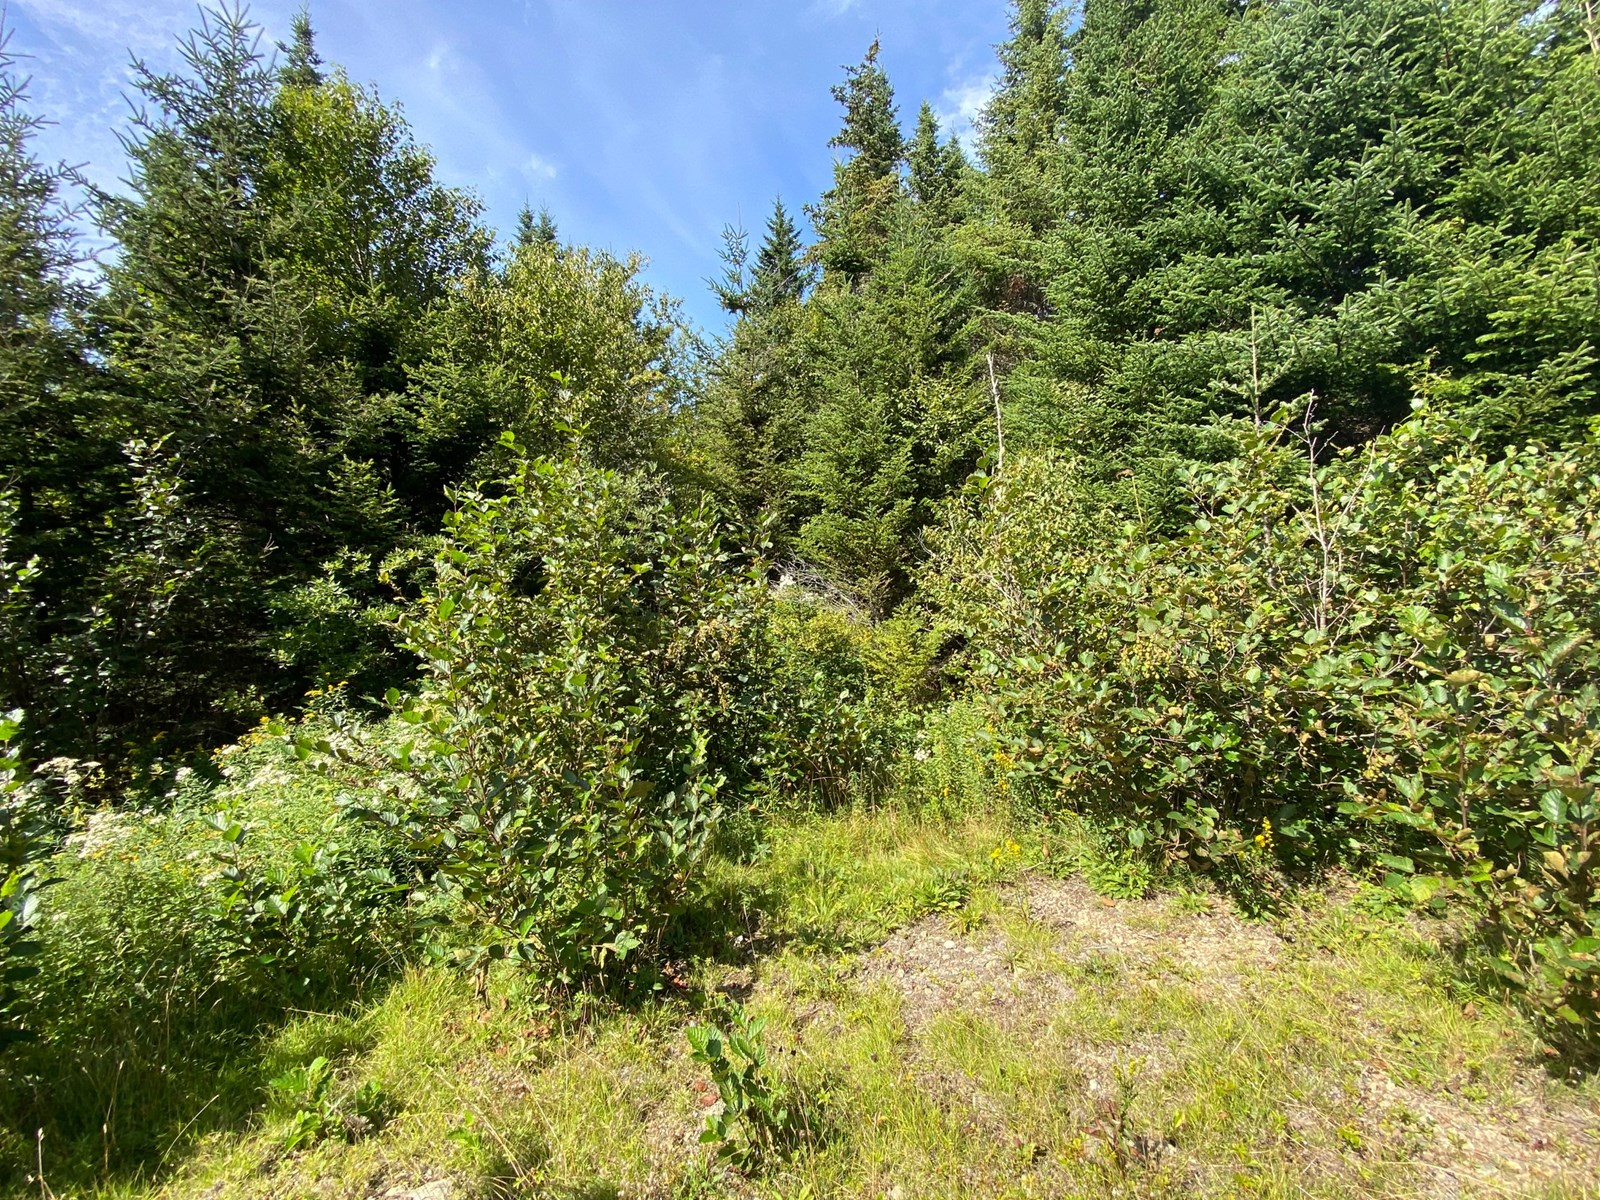 Land for sale in Cutler, Maine